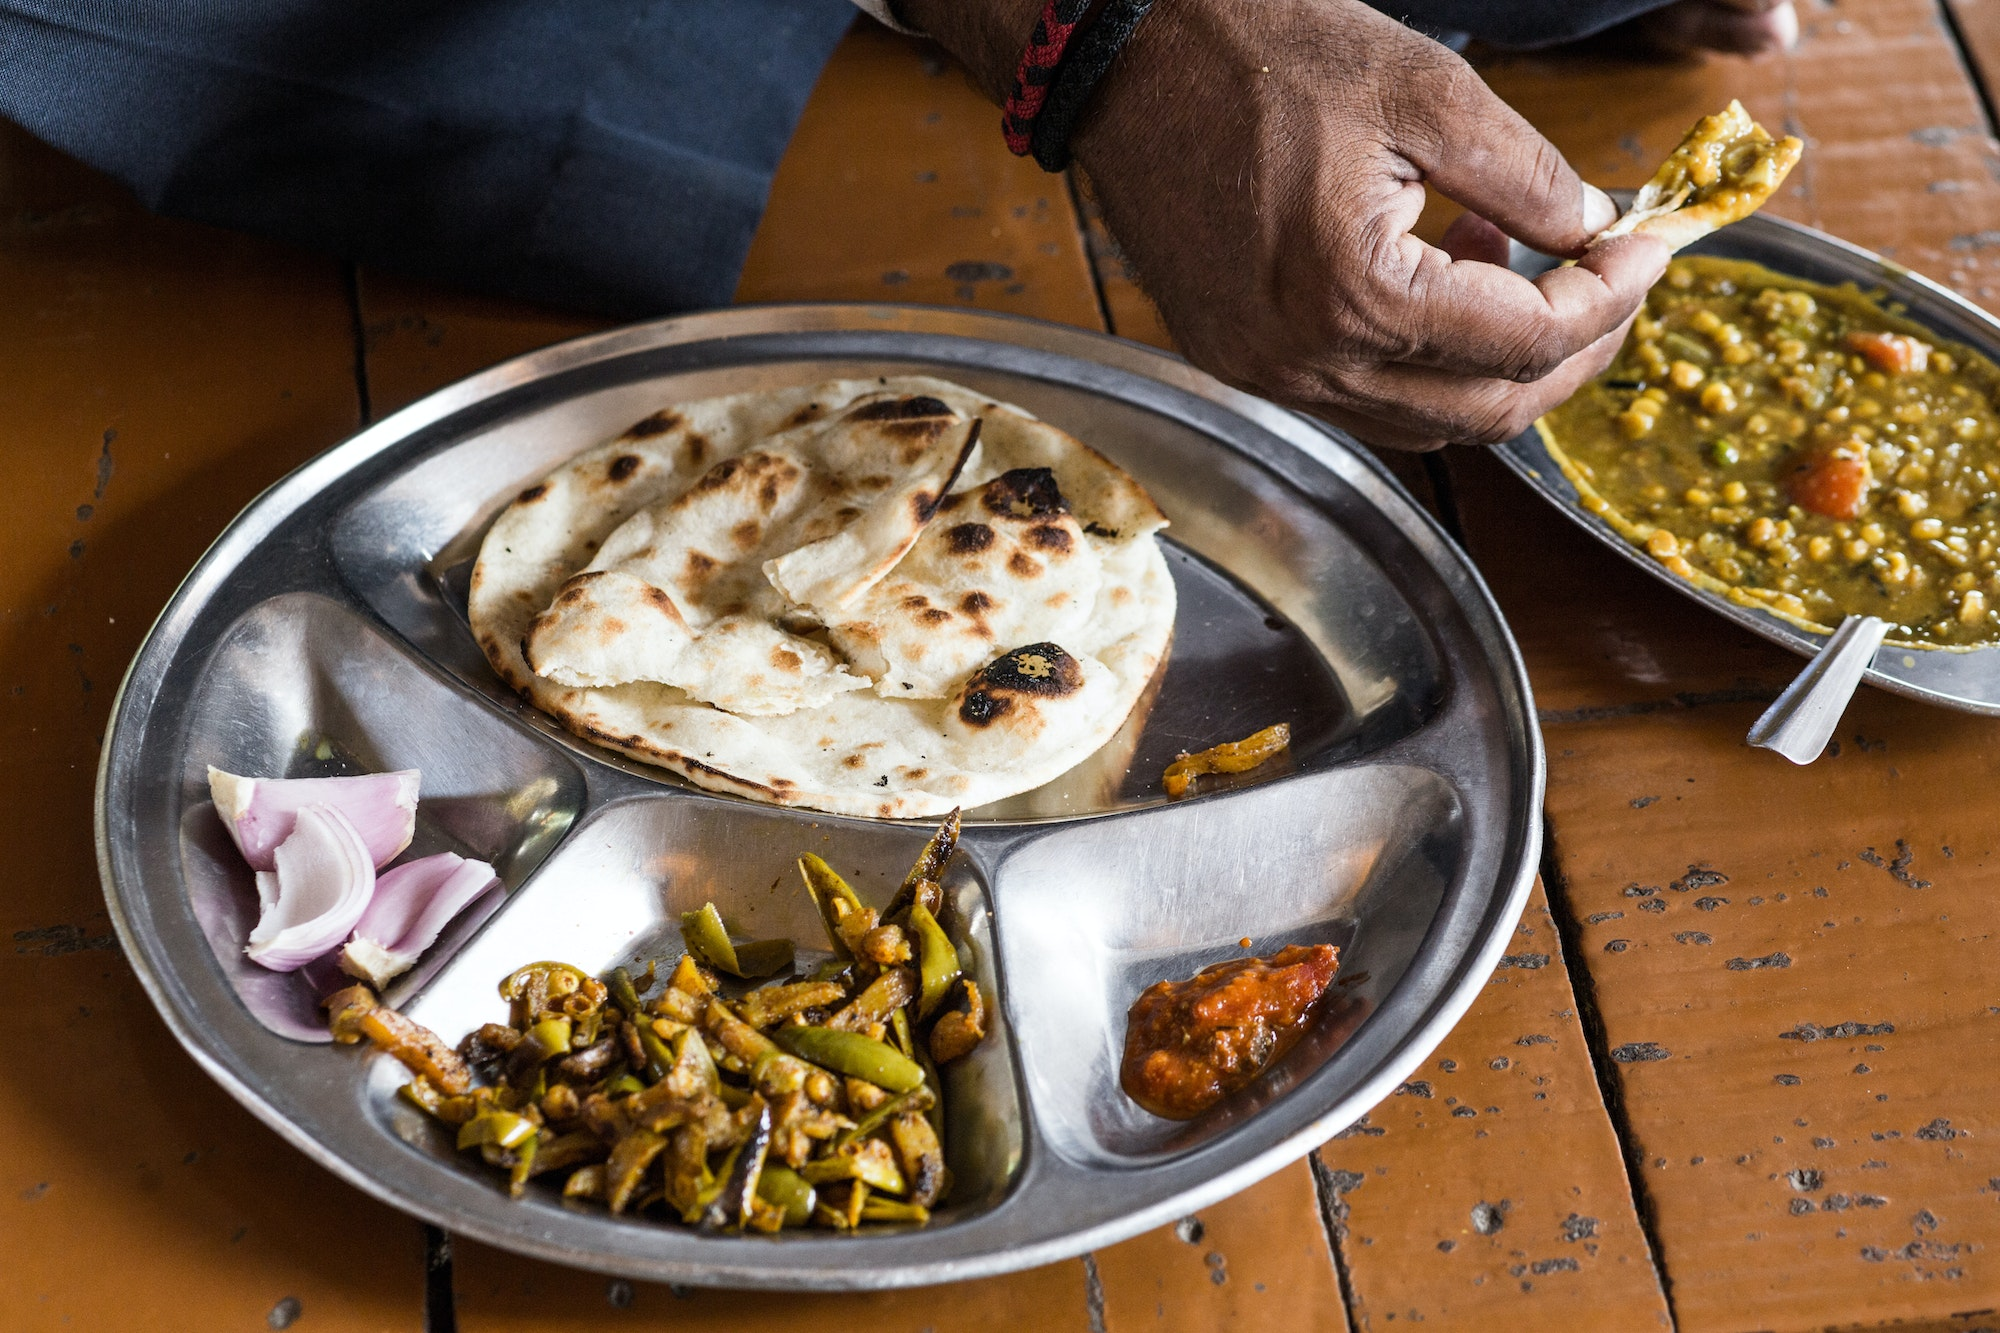 Curry and chapati in India